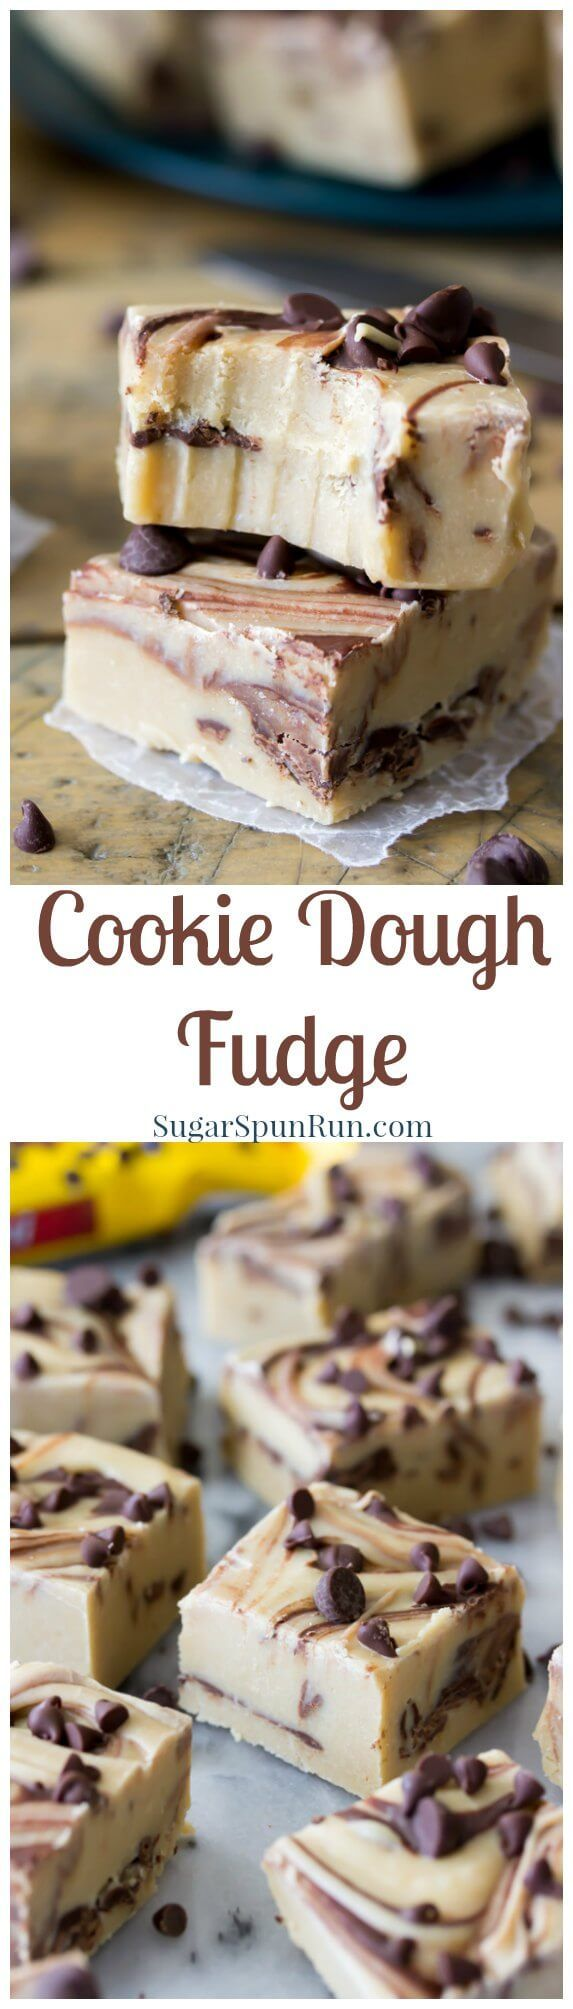 Cookie Dough Fudge, so easy, and good, no candy thermometer required! @sugarspunrun